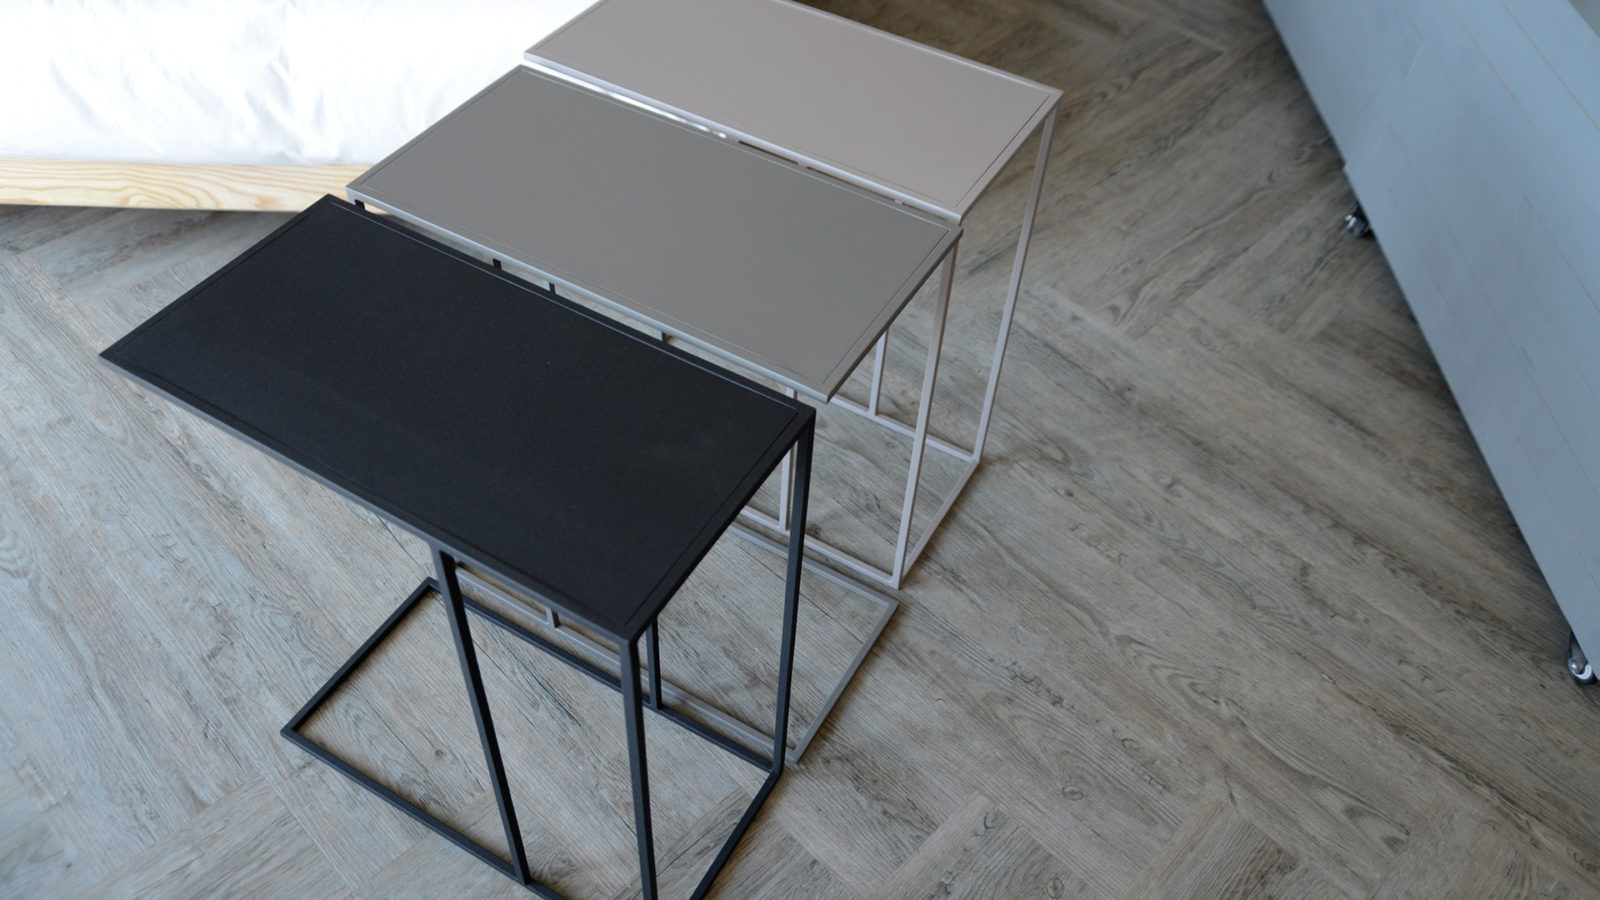 metal side tables in a choice of colours - for computer or breakfast in bed